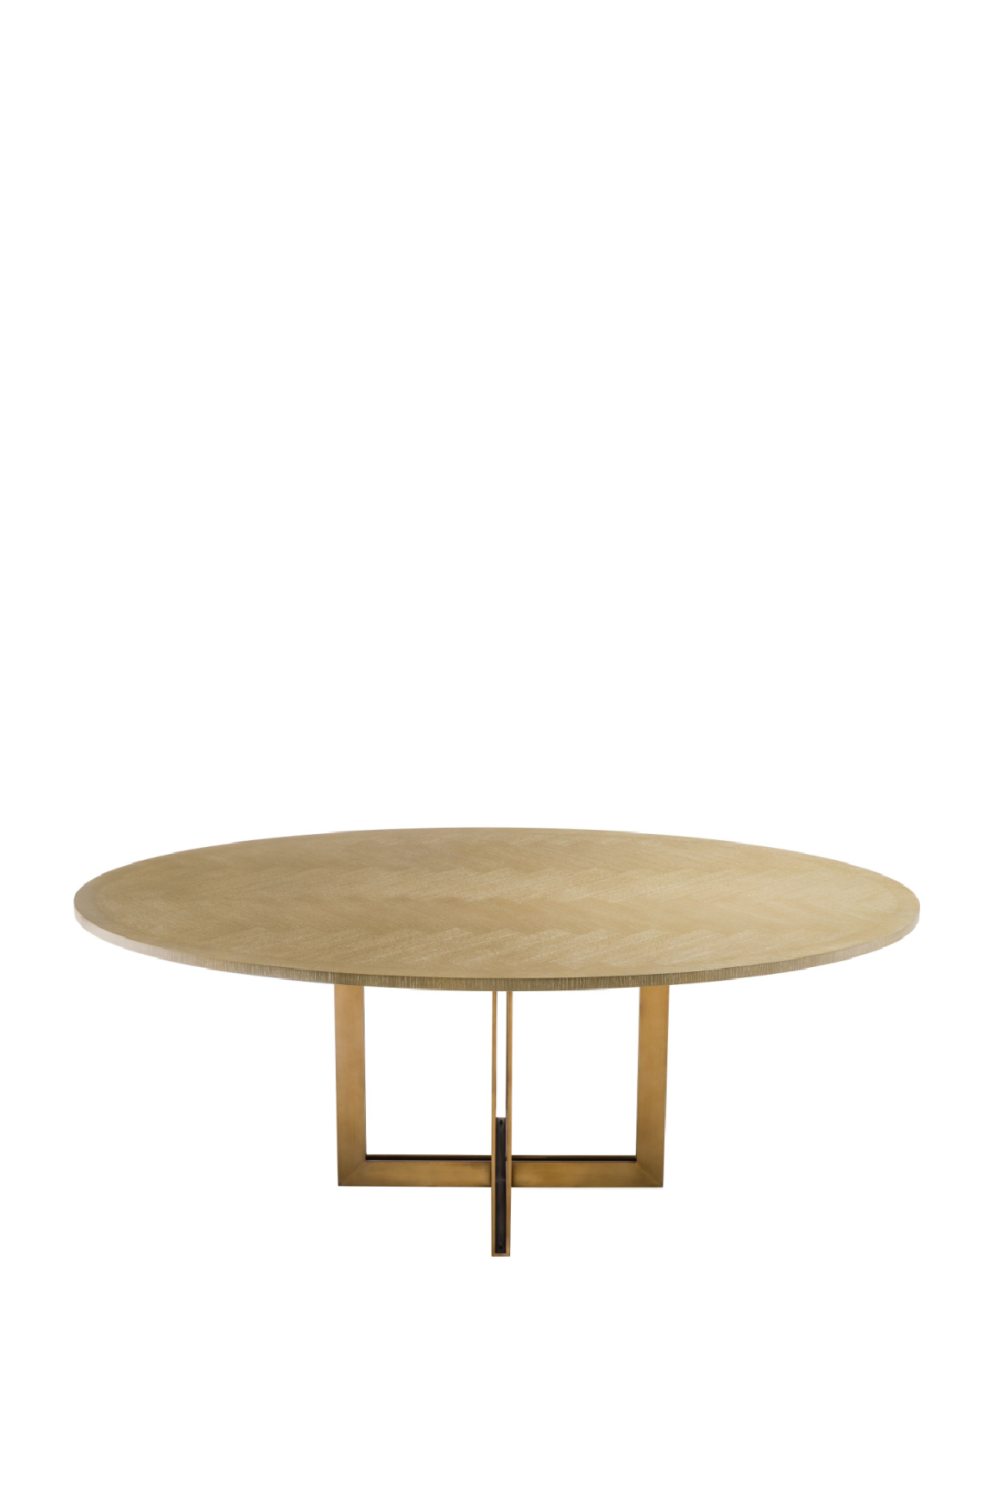 Oval Oak Dining Table | Eichholtz Melchior